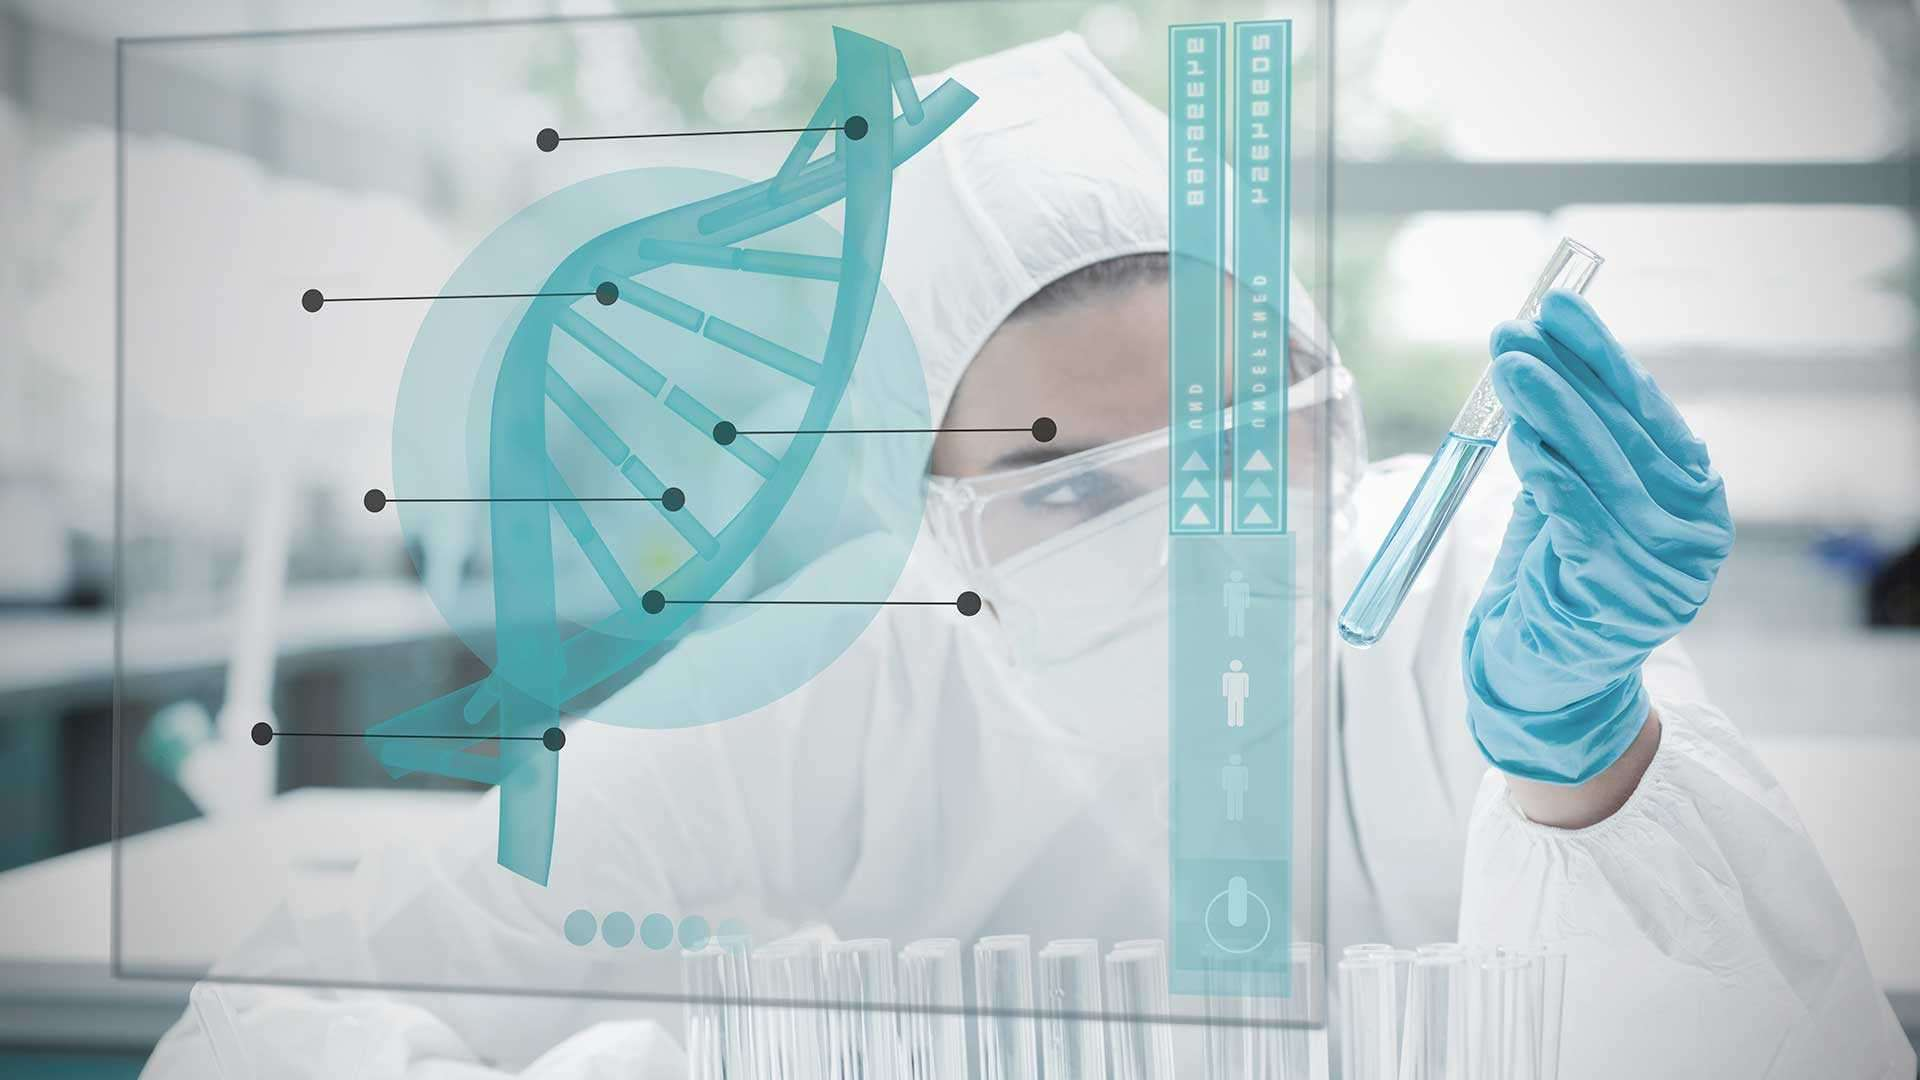 CPI has helped companies to explore new medicines, treatments and diagnostics